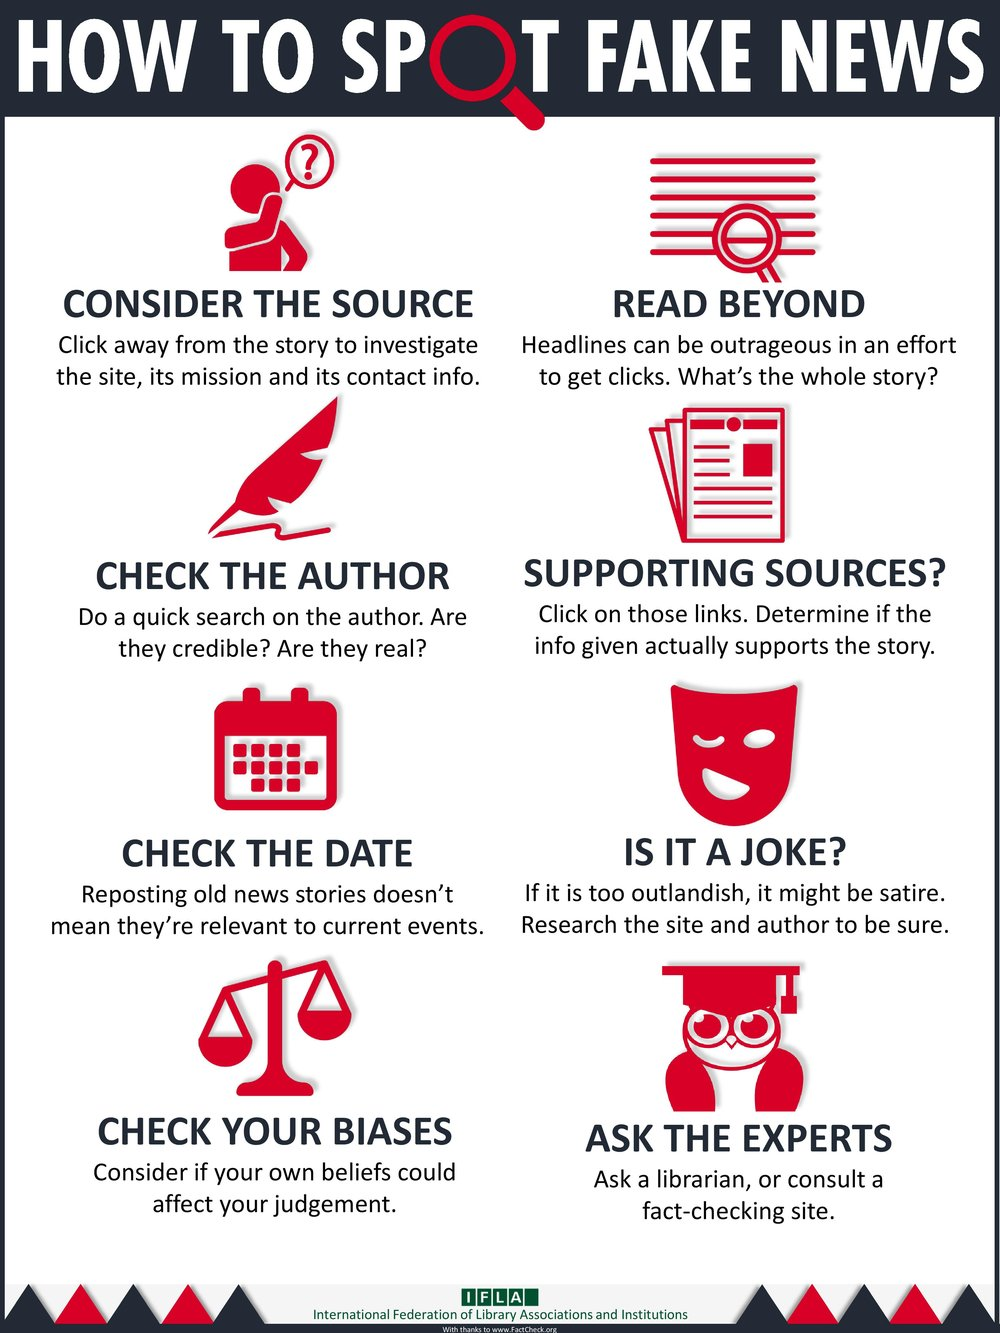 """Critical thinking is a key skill in media and information literacy, and the mission of libraries is to educate and advocate its importance,"" according to the International Association of Library Associations and Institutions. They encourage us all to share this infographic."